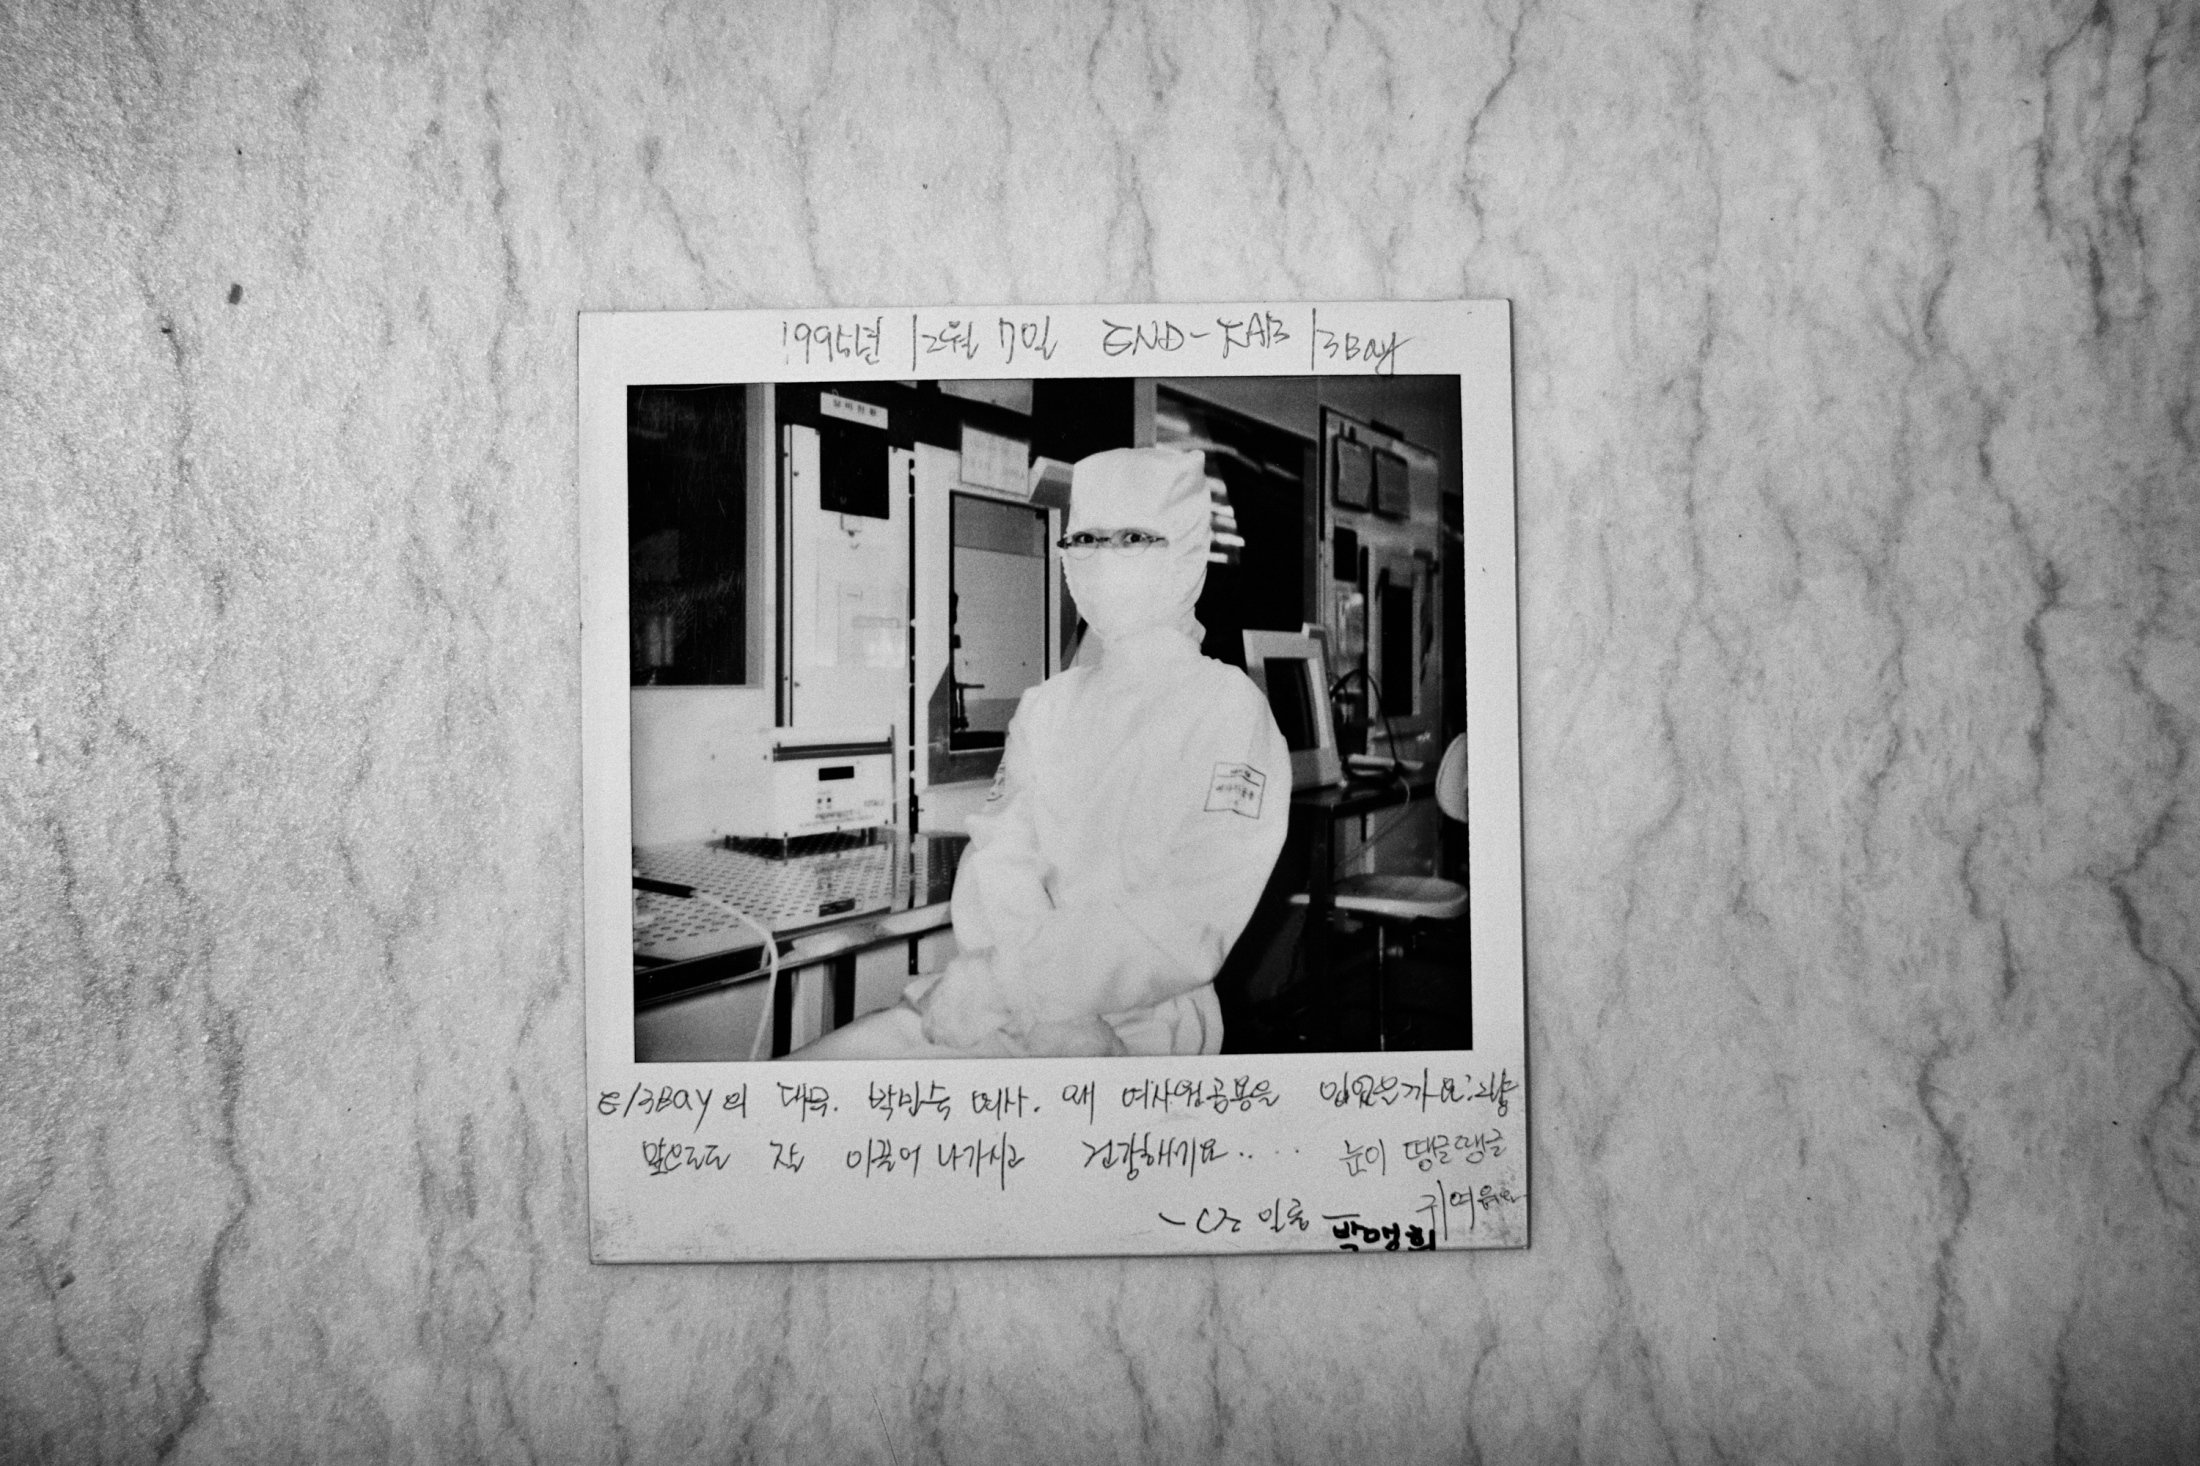 A polaroid picture of Park Min-sook at her working place at 3-bay in Samsung semiconductor factory is seen on a table at her home in Yangpyung, South Korea on Nov. 12, 2013. The picture was taken by Min-sook's colleague on Dec. 7, 1995. Park Min-sook worked at Samsung Electronics semiconductor factory from 1991 to 1998. She was diagnosed with breast cancer in 2012, underwent surgery and is in the convalescent stage.